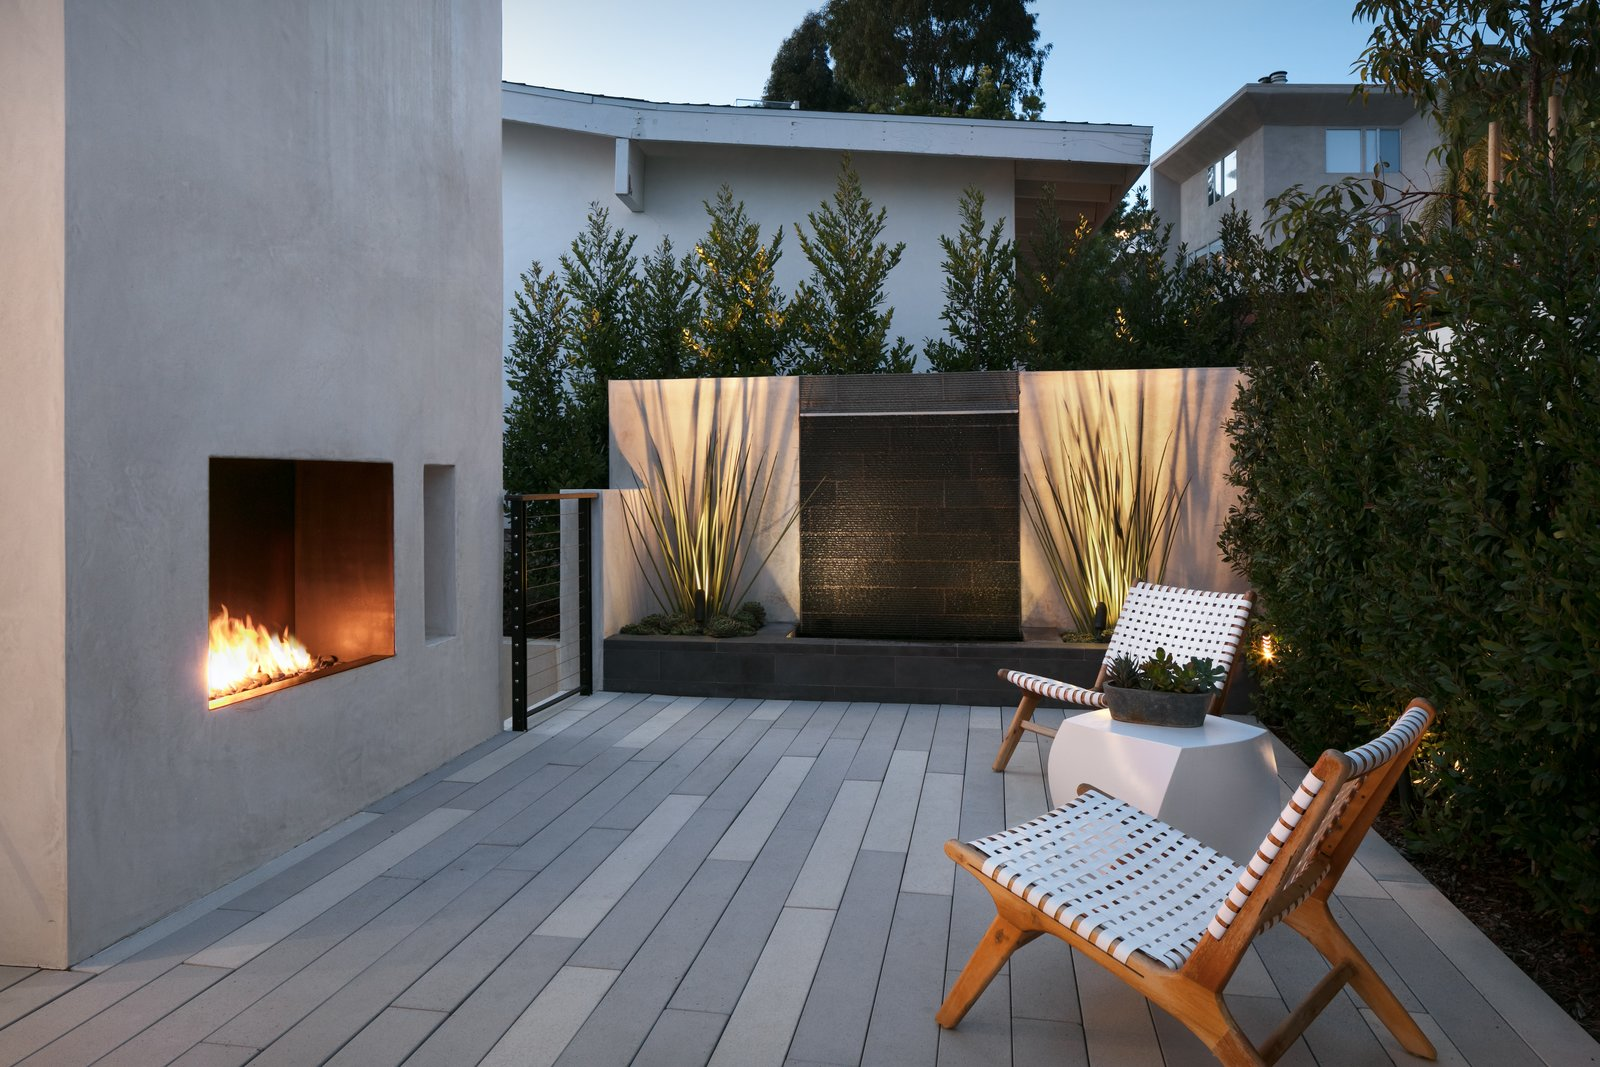 Outdoor, Rooftop, Small Patio, Porch, Deck, Stone Fences, Wall, Concrete Fences, Wall, Decking Patio, Porch, Deck, Trees, Shrubs, Wire Fences, Wall, and Horizontal Fences, Wall Sweis created a number of different outdoor spaces, each with its own feel.   Photo 6 of 8 in Architect Abeer Sweis Shares Fire-Resistant Building Strategies